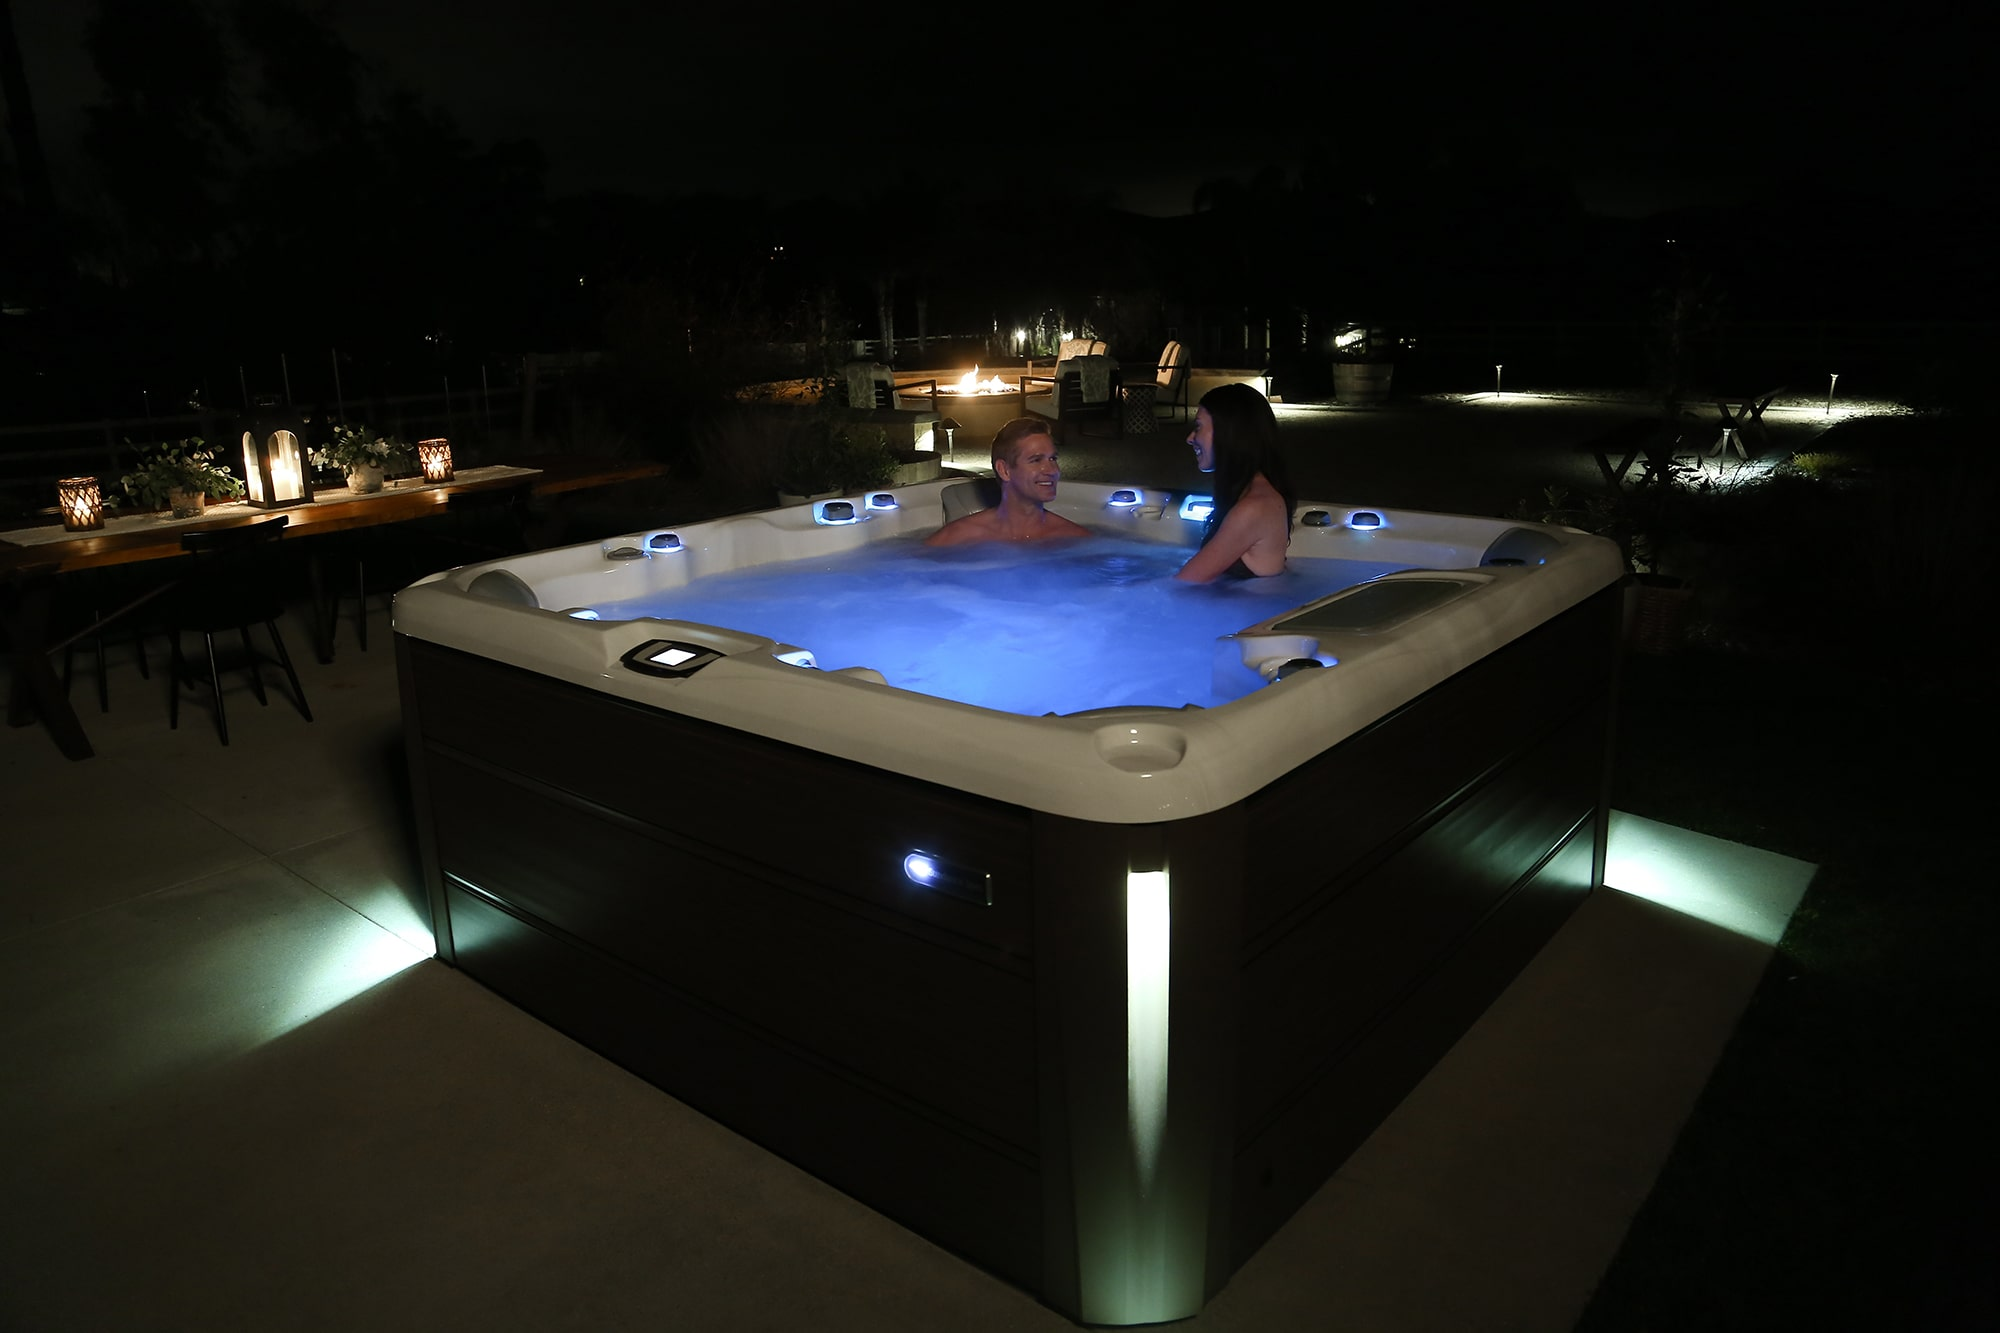 Hot Tub Sundance Spas 880 Series Optima Install in Redding, CA